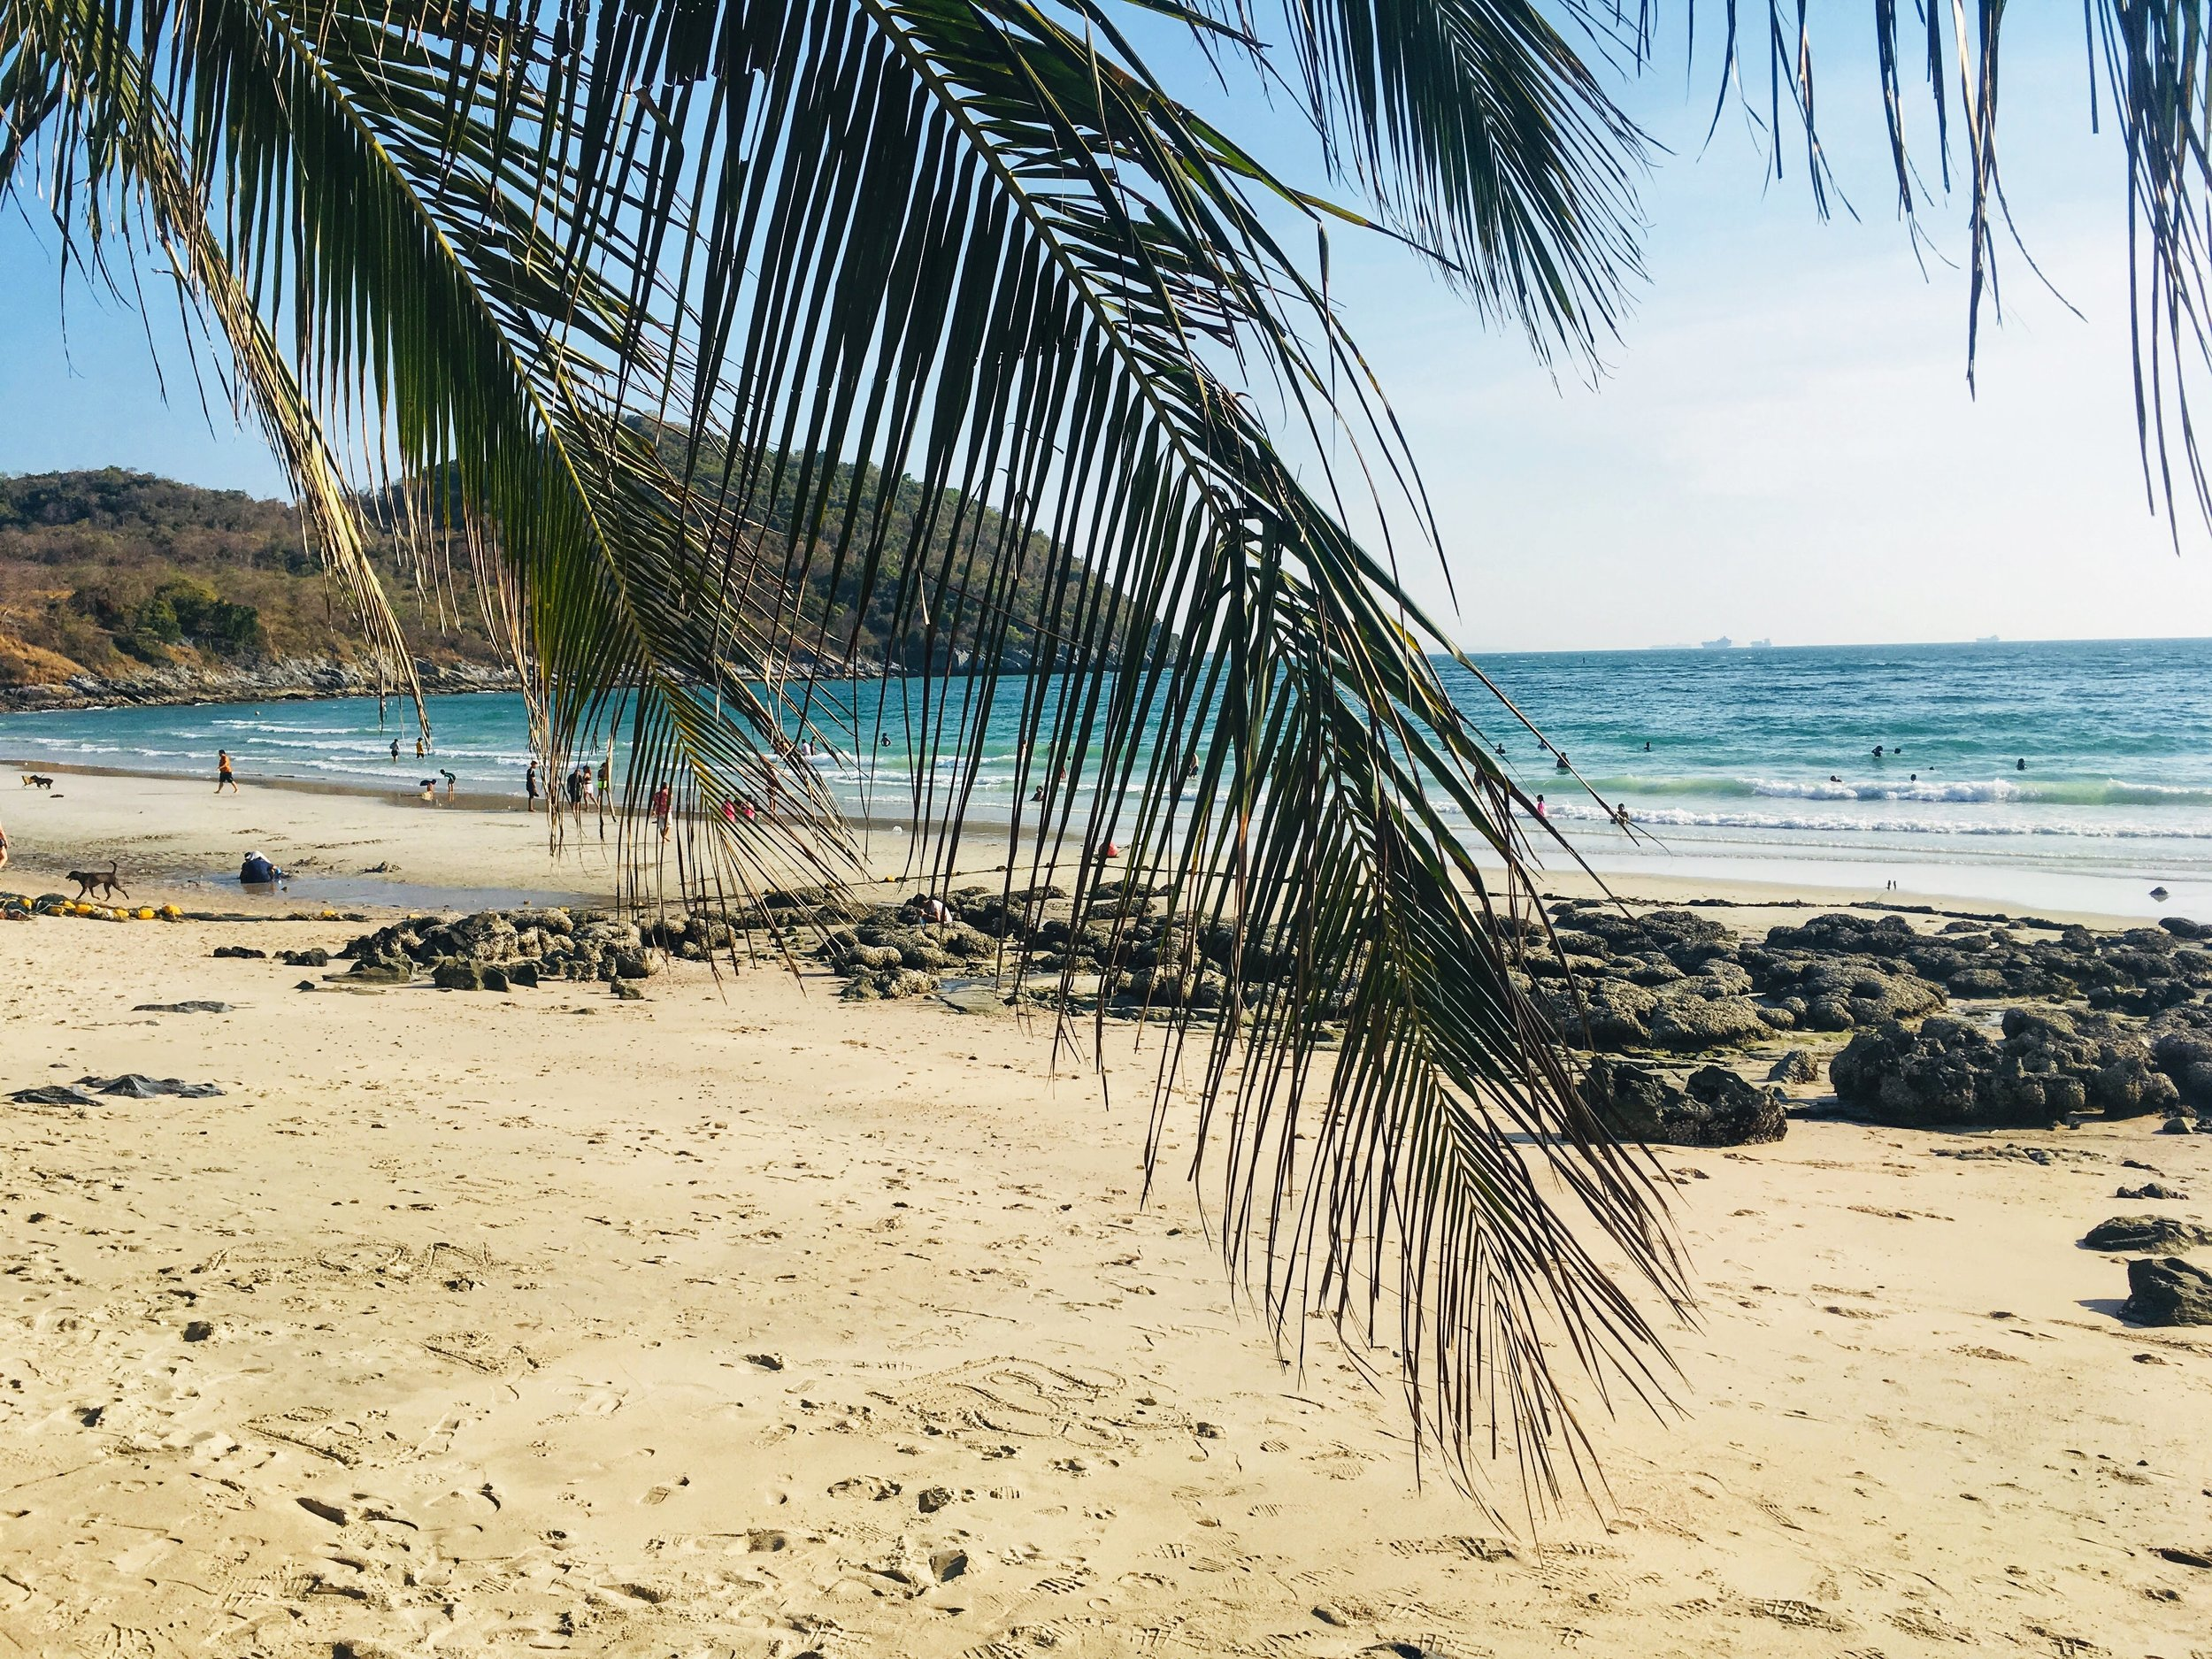 Tham Phang Beach on Koh Sichang Island is the closest and nicest beach to Bangkok